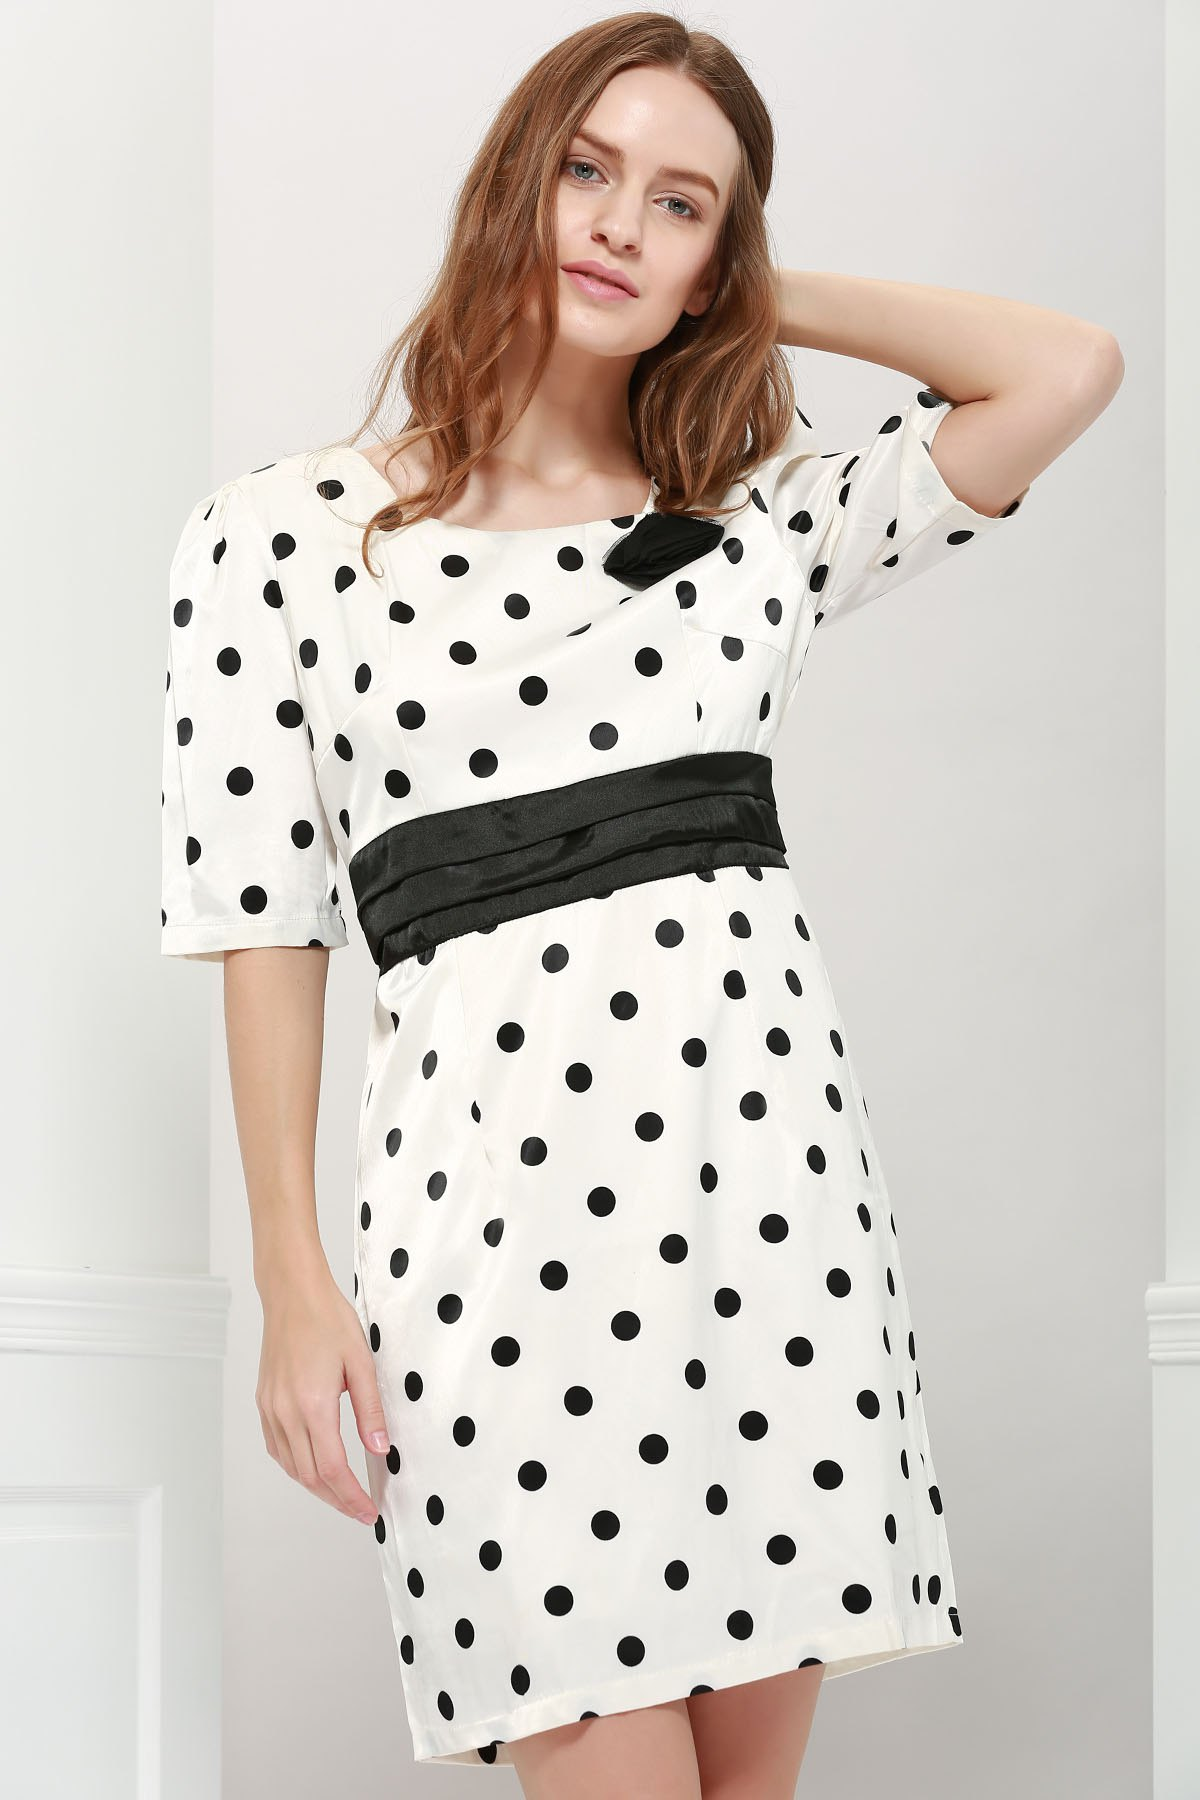 Lady Style Elegant Large Polka Dot Embellished Short Sleeves Dress For Women от Dresslily.com INT